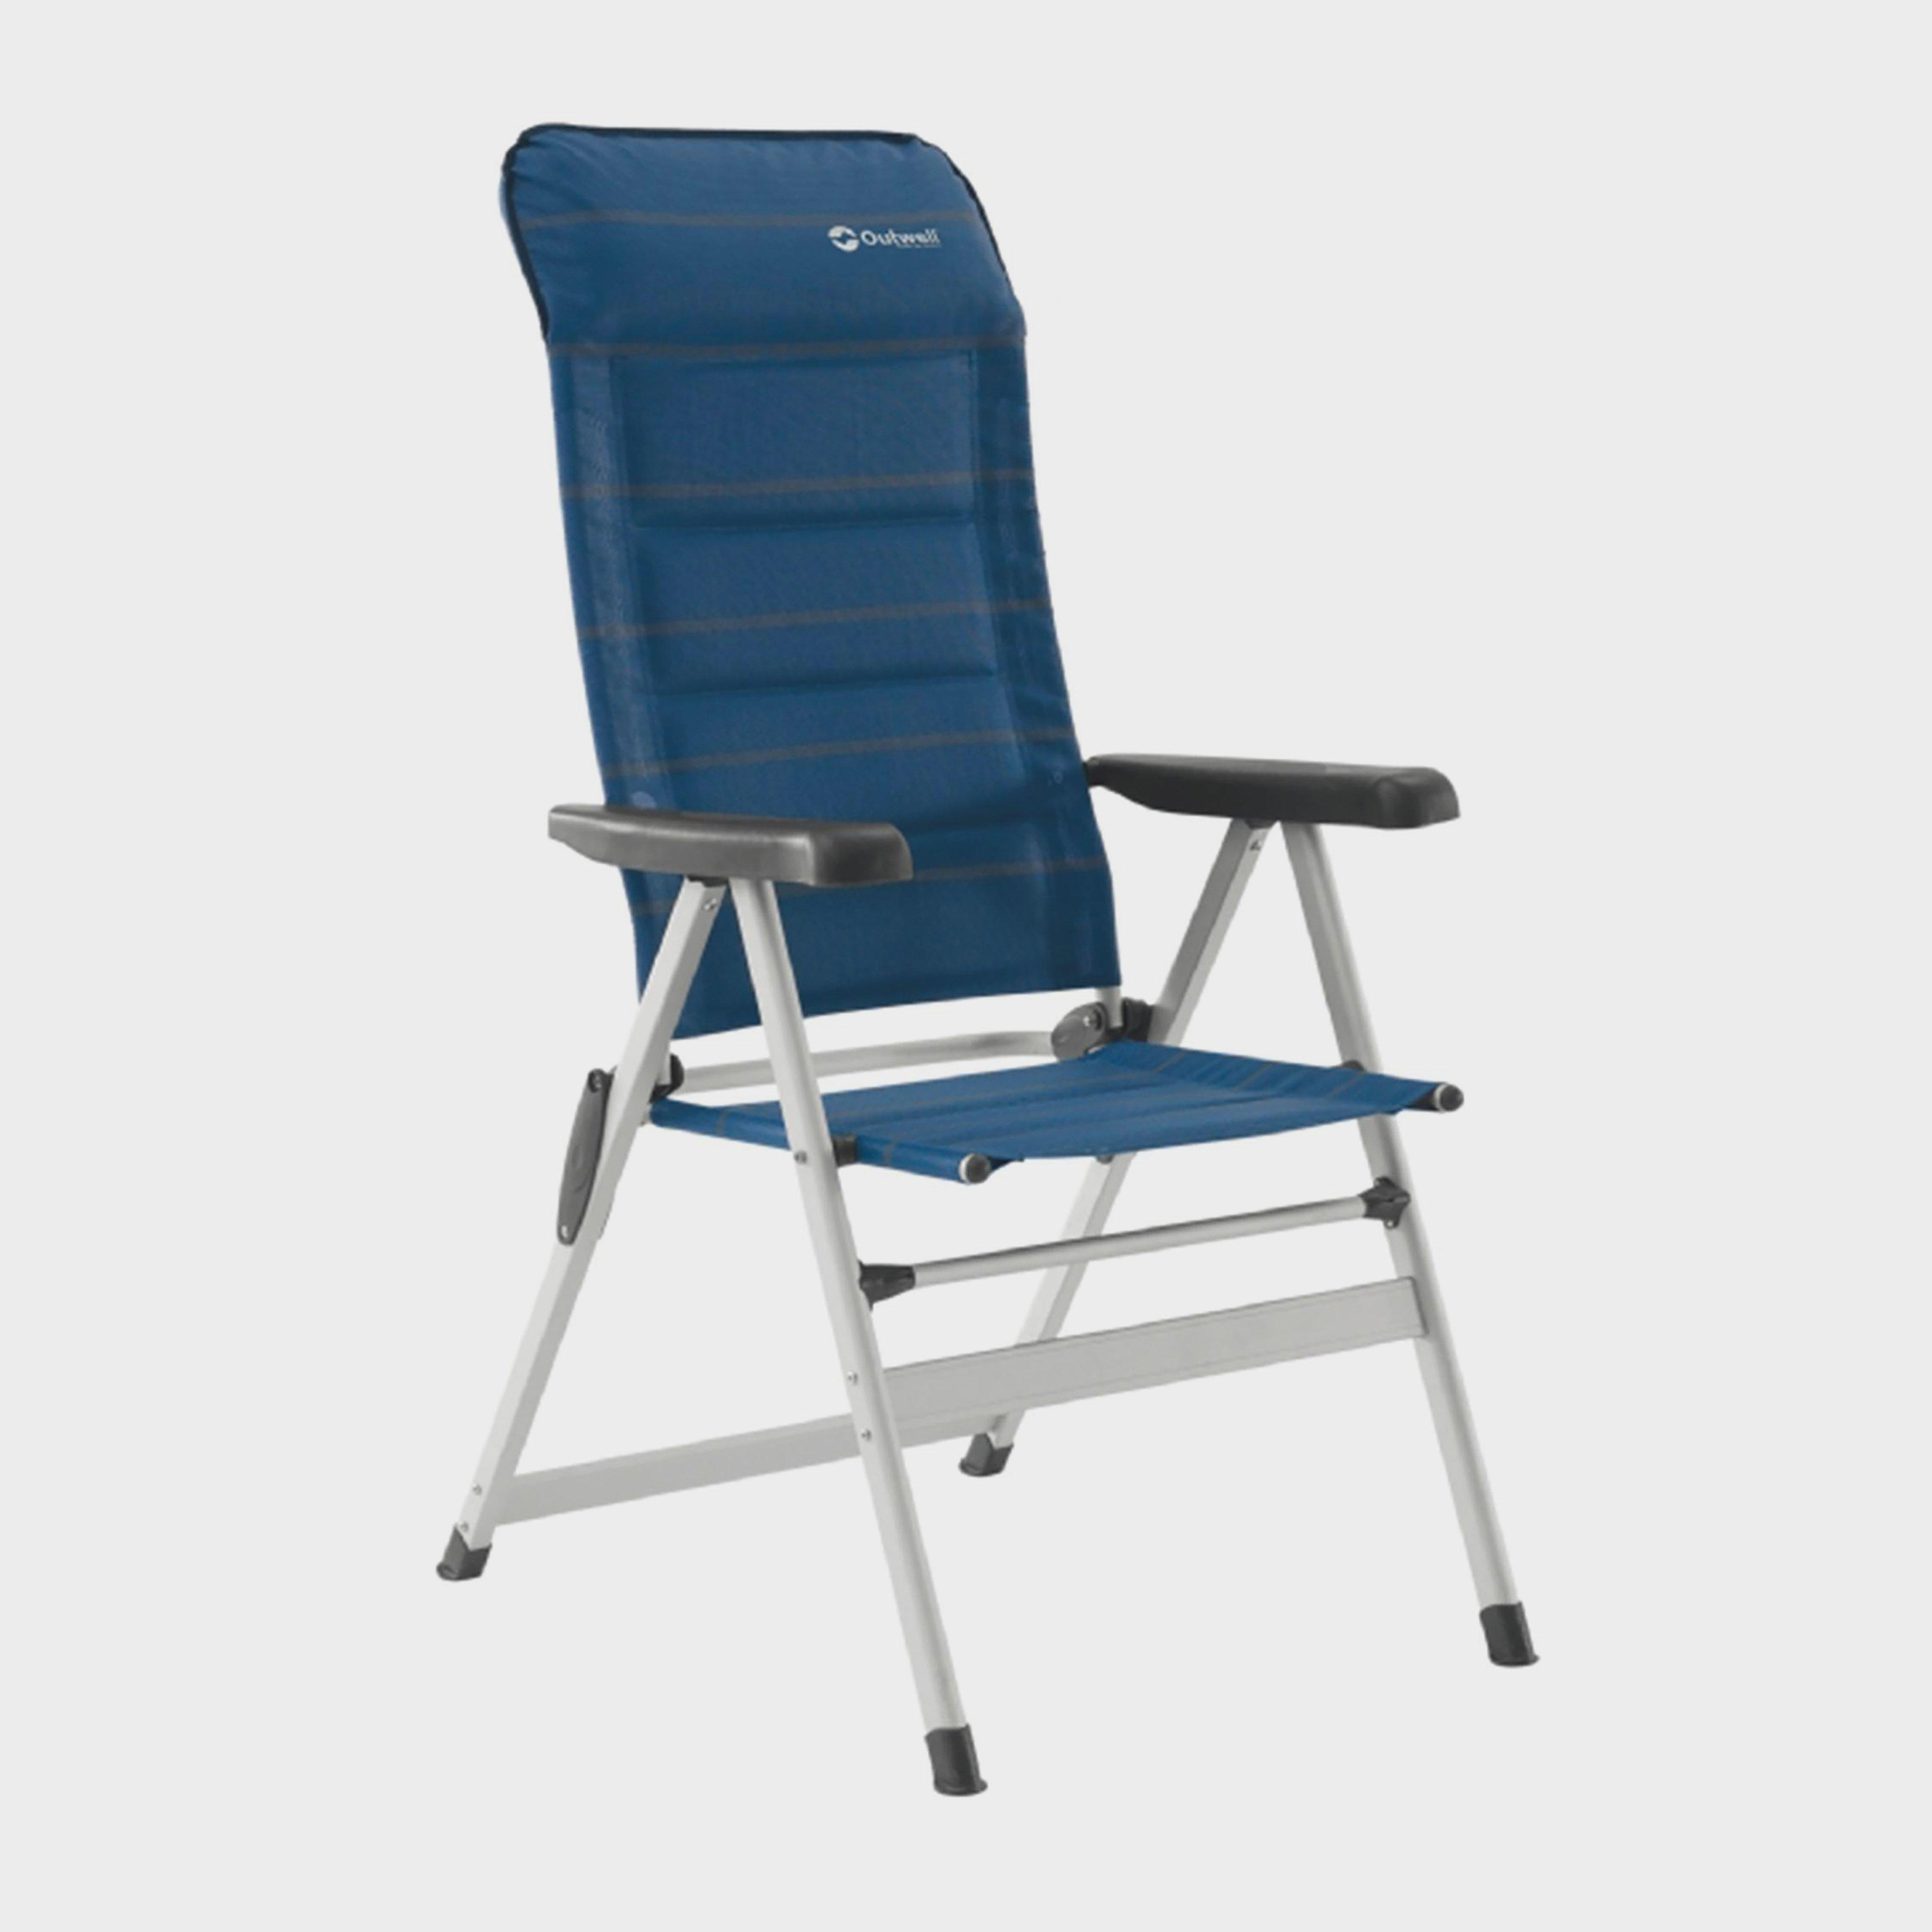 Outwell Folding Bed Images